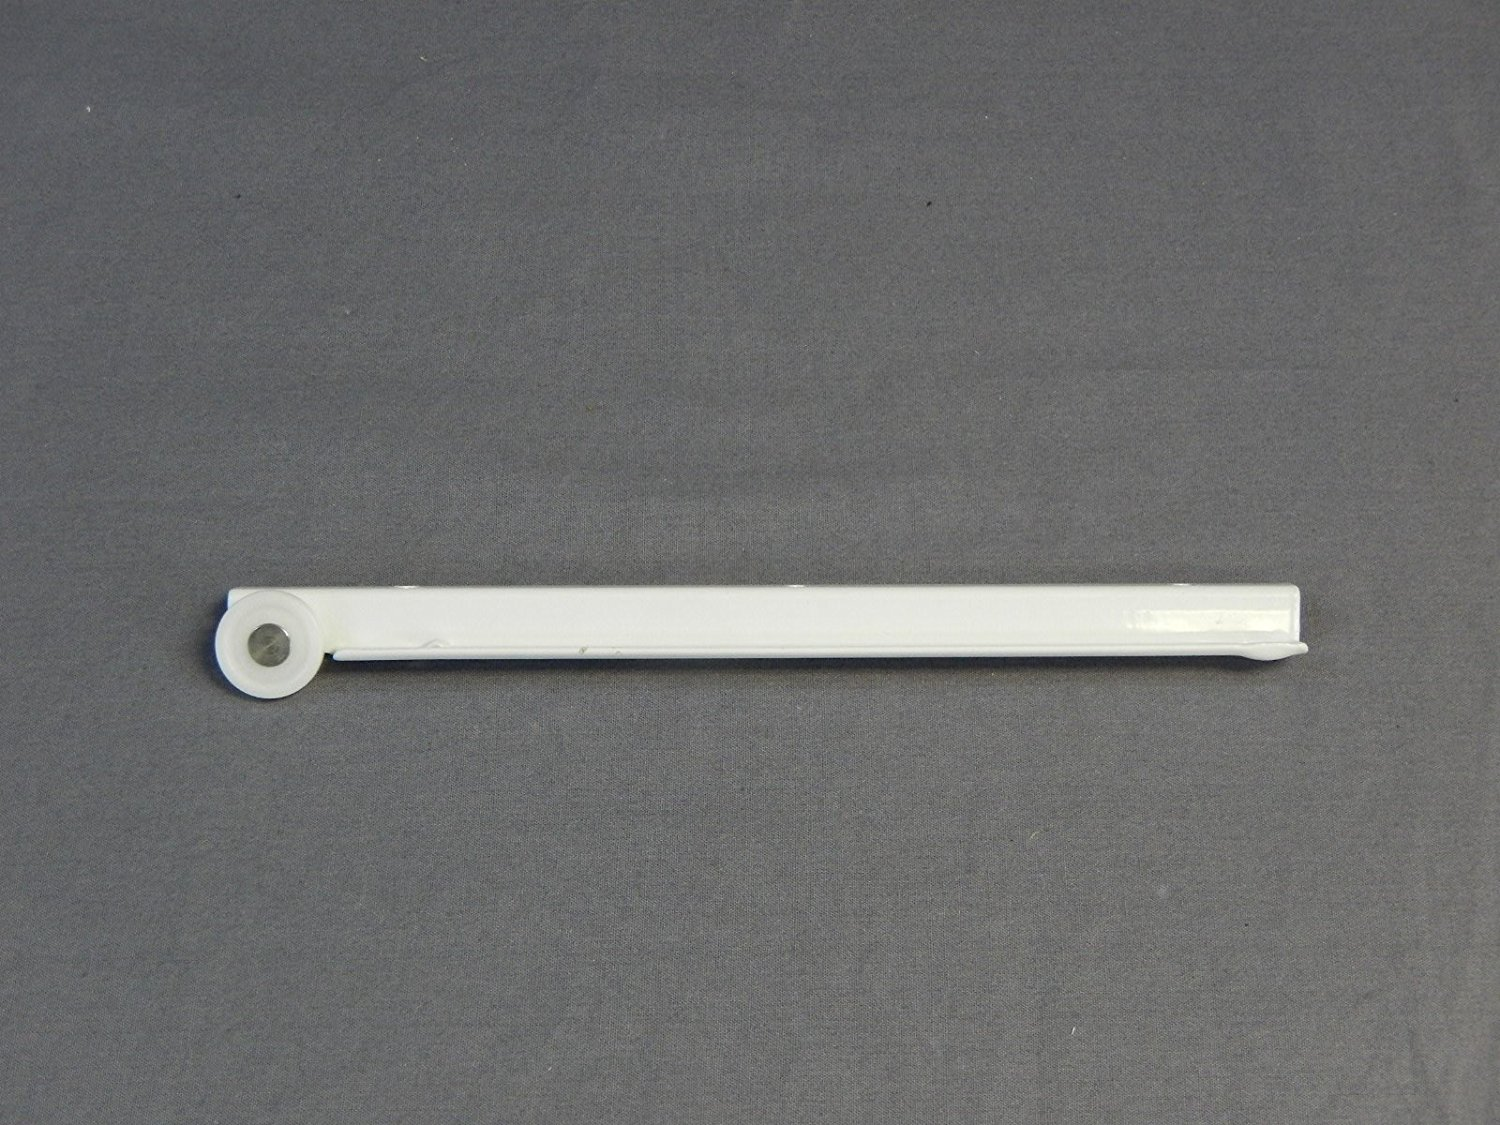 Recertified GE WR72X10221 Refrigerator Pan Right Slide Glider